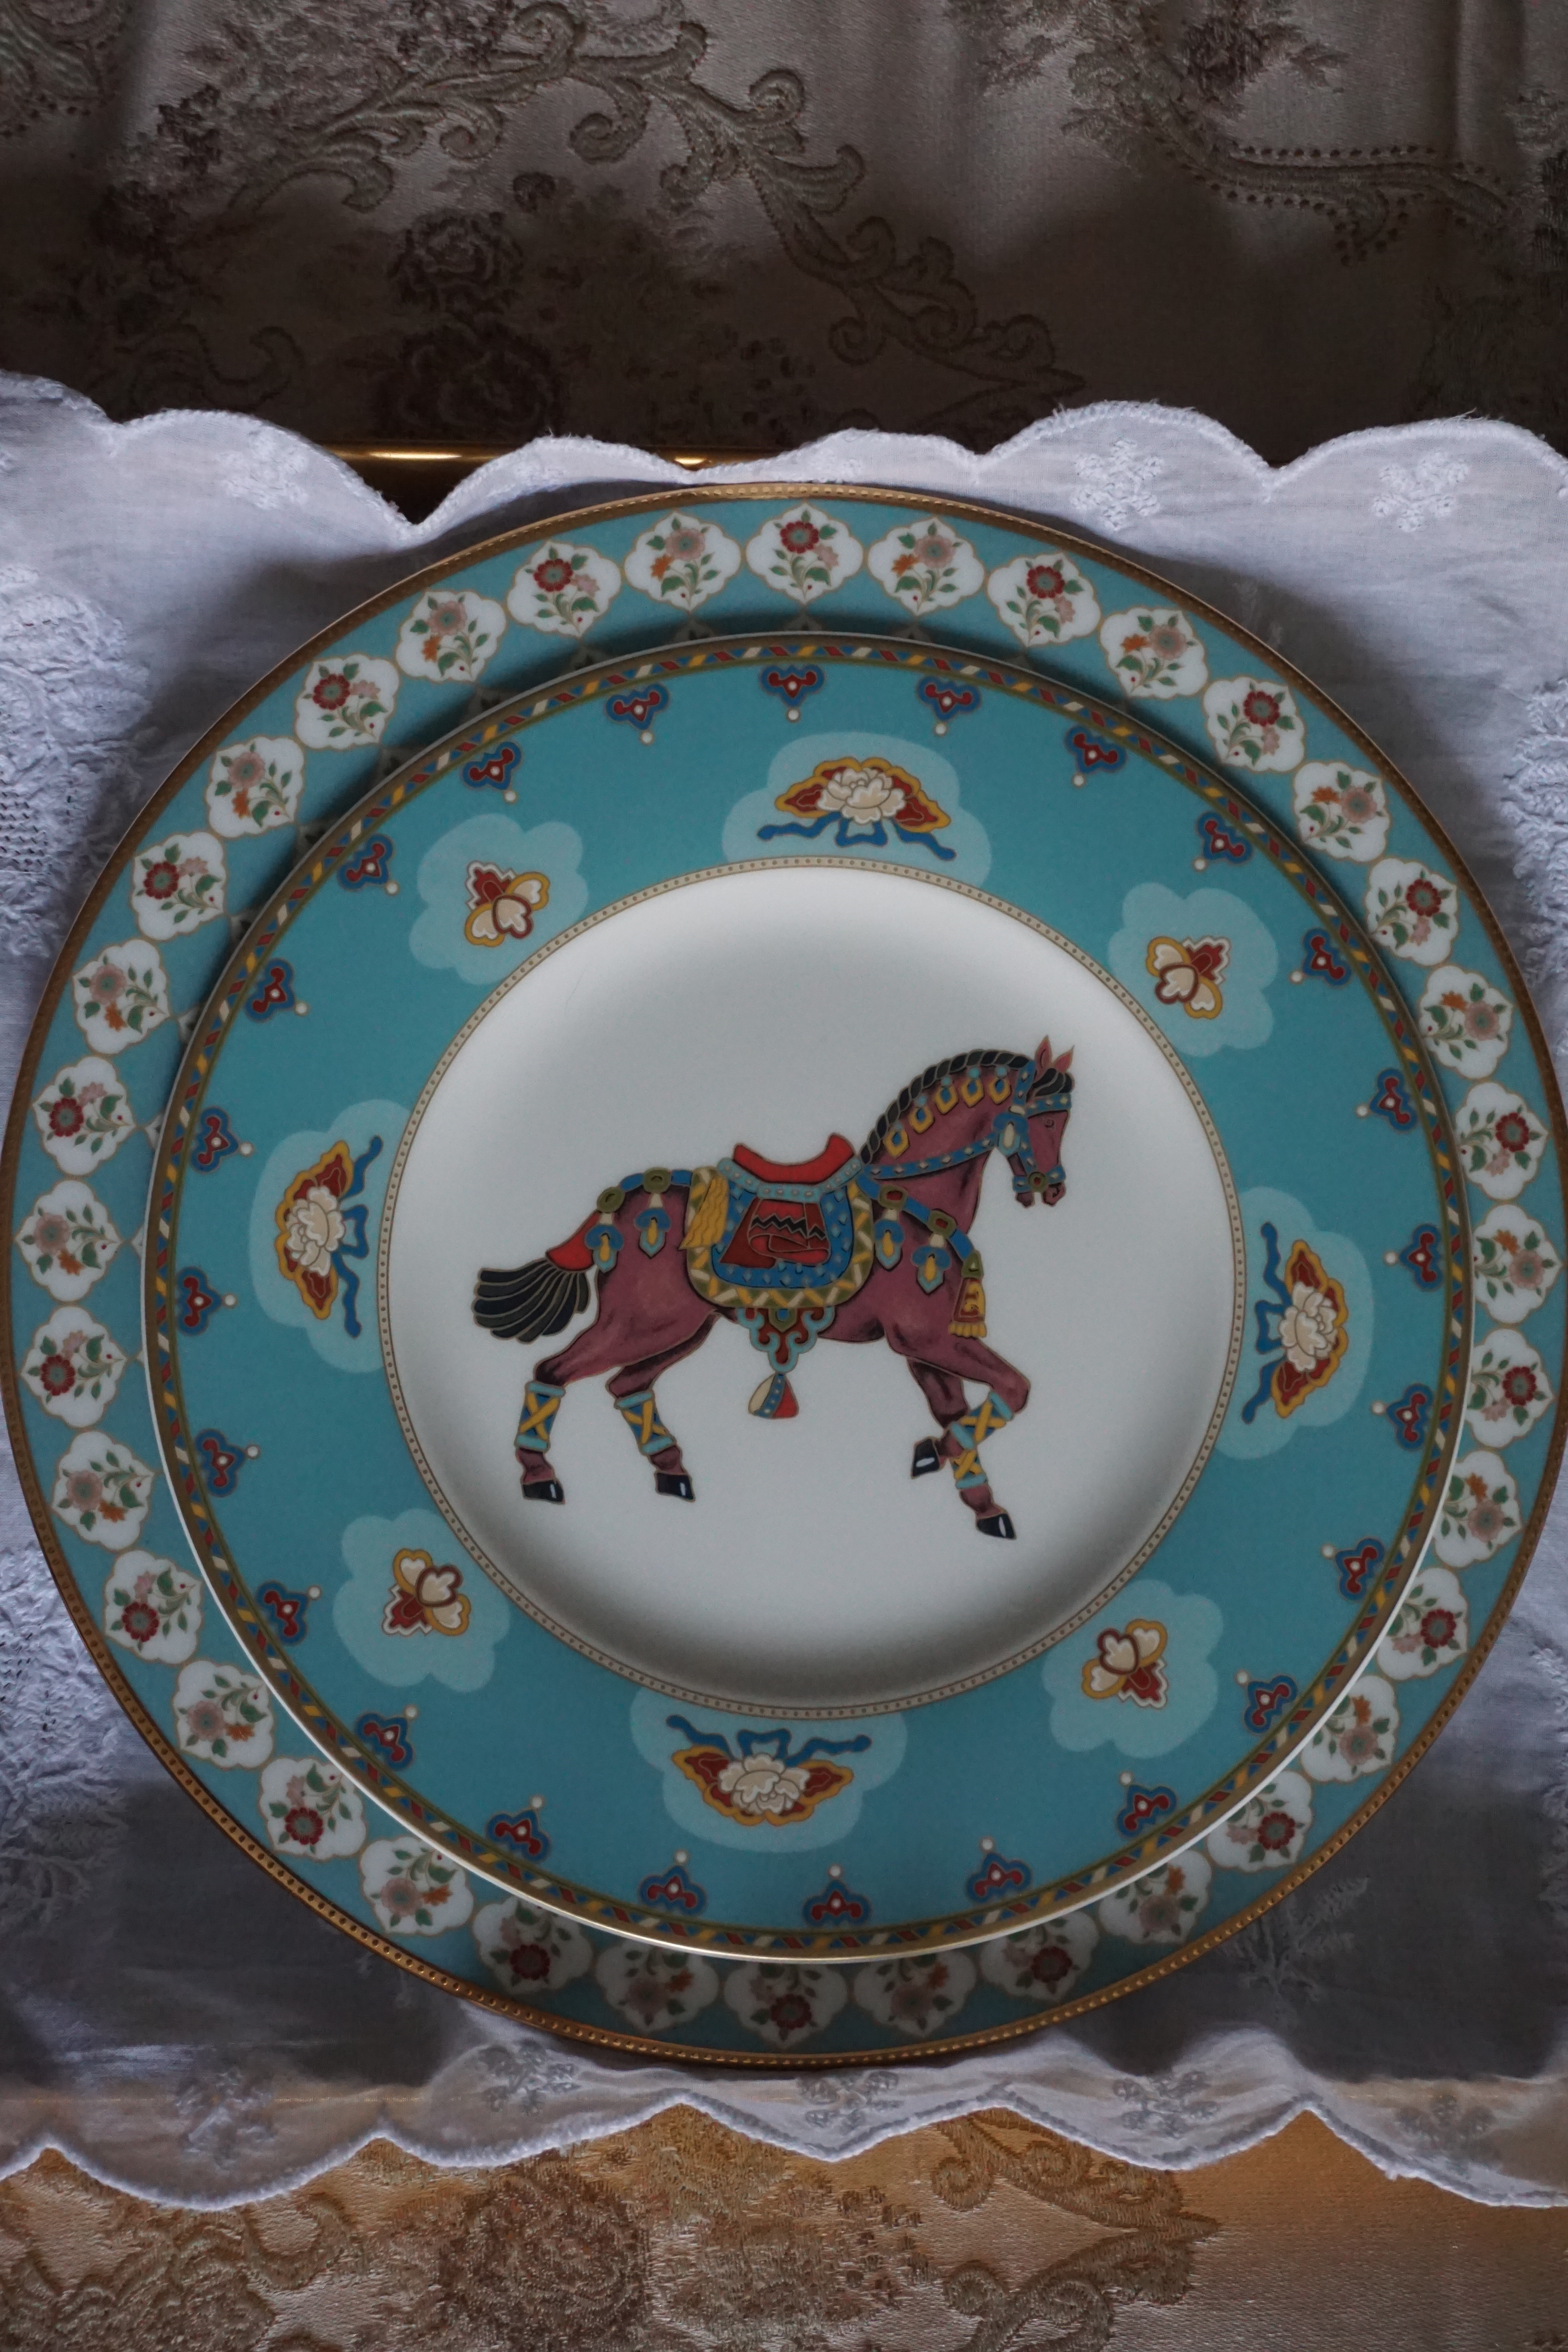 Villeroy and Boch Samarkand Porcelain History Collecting